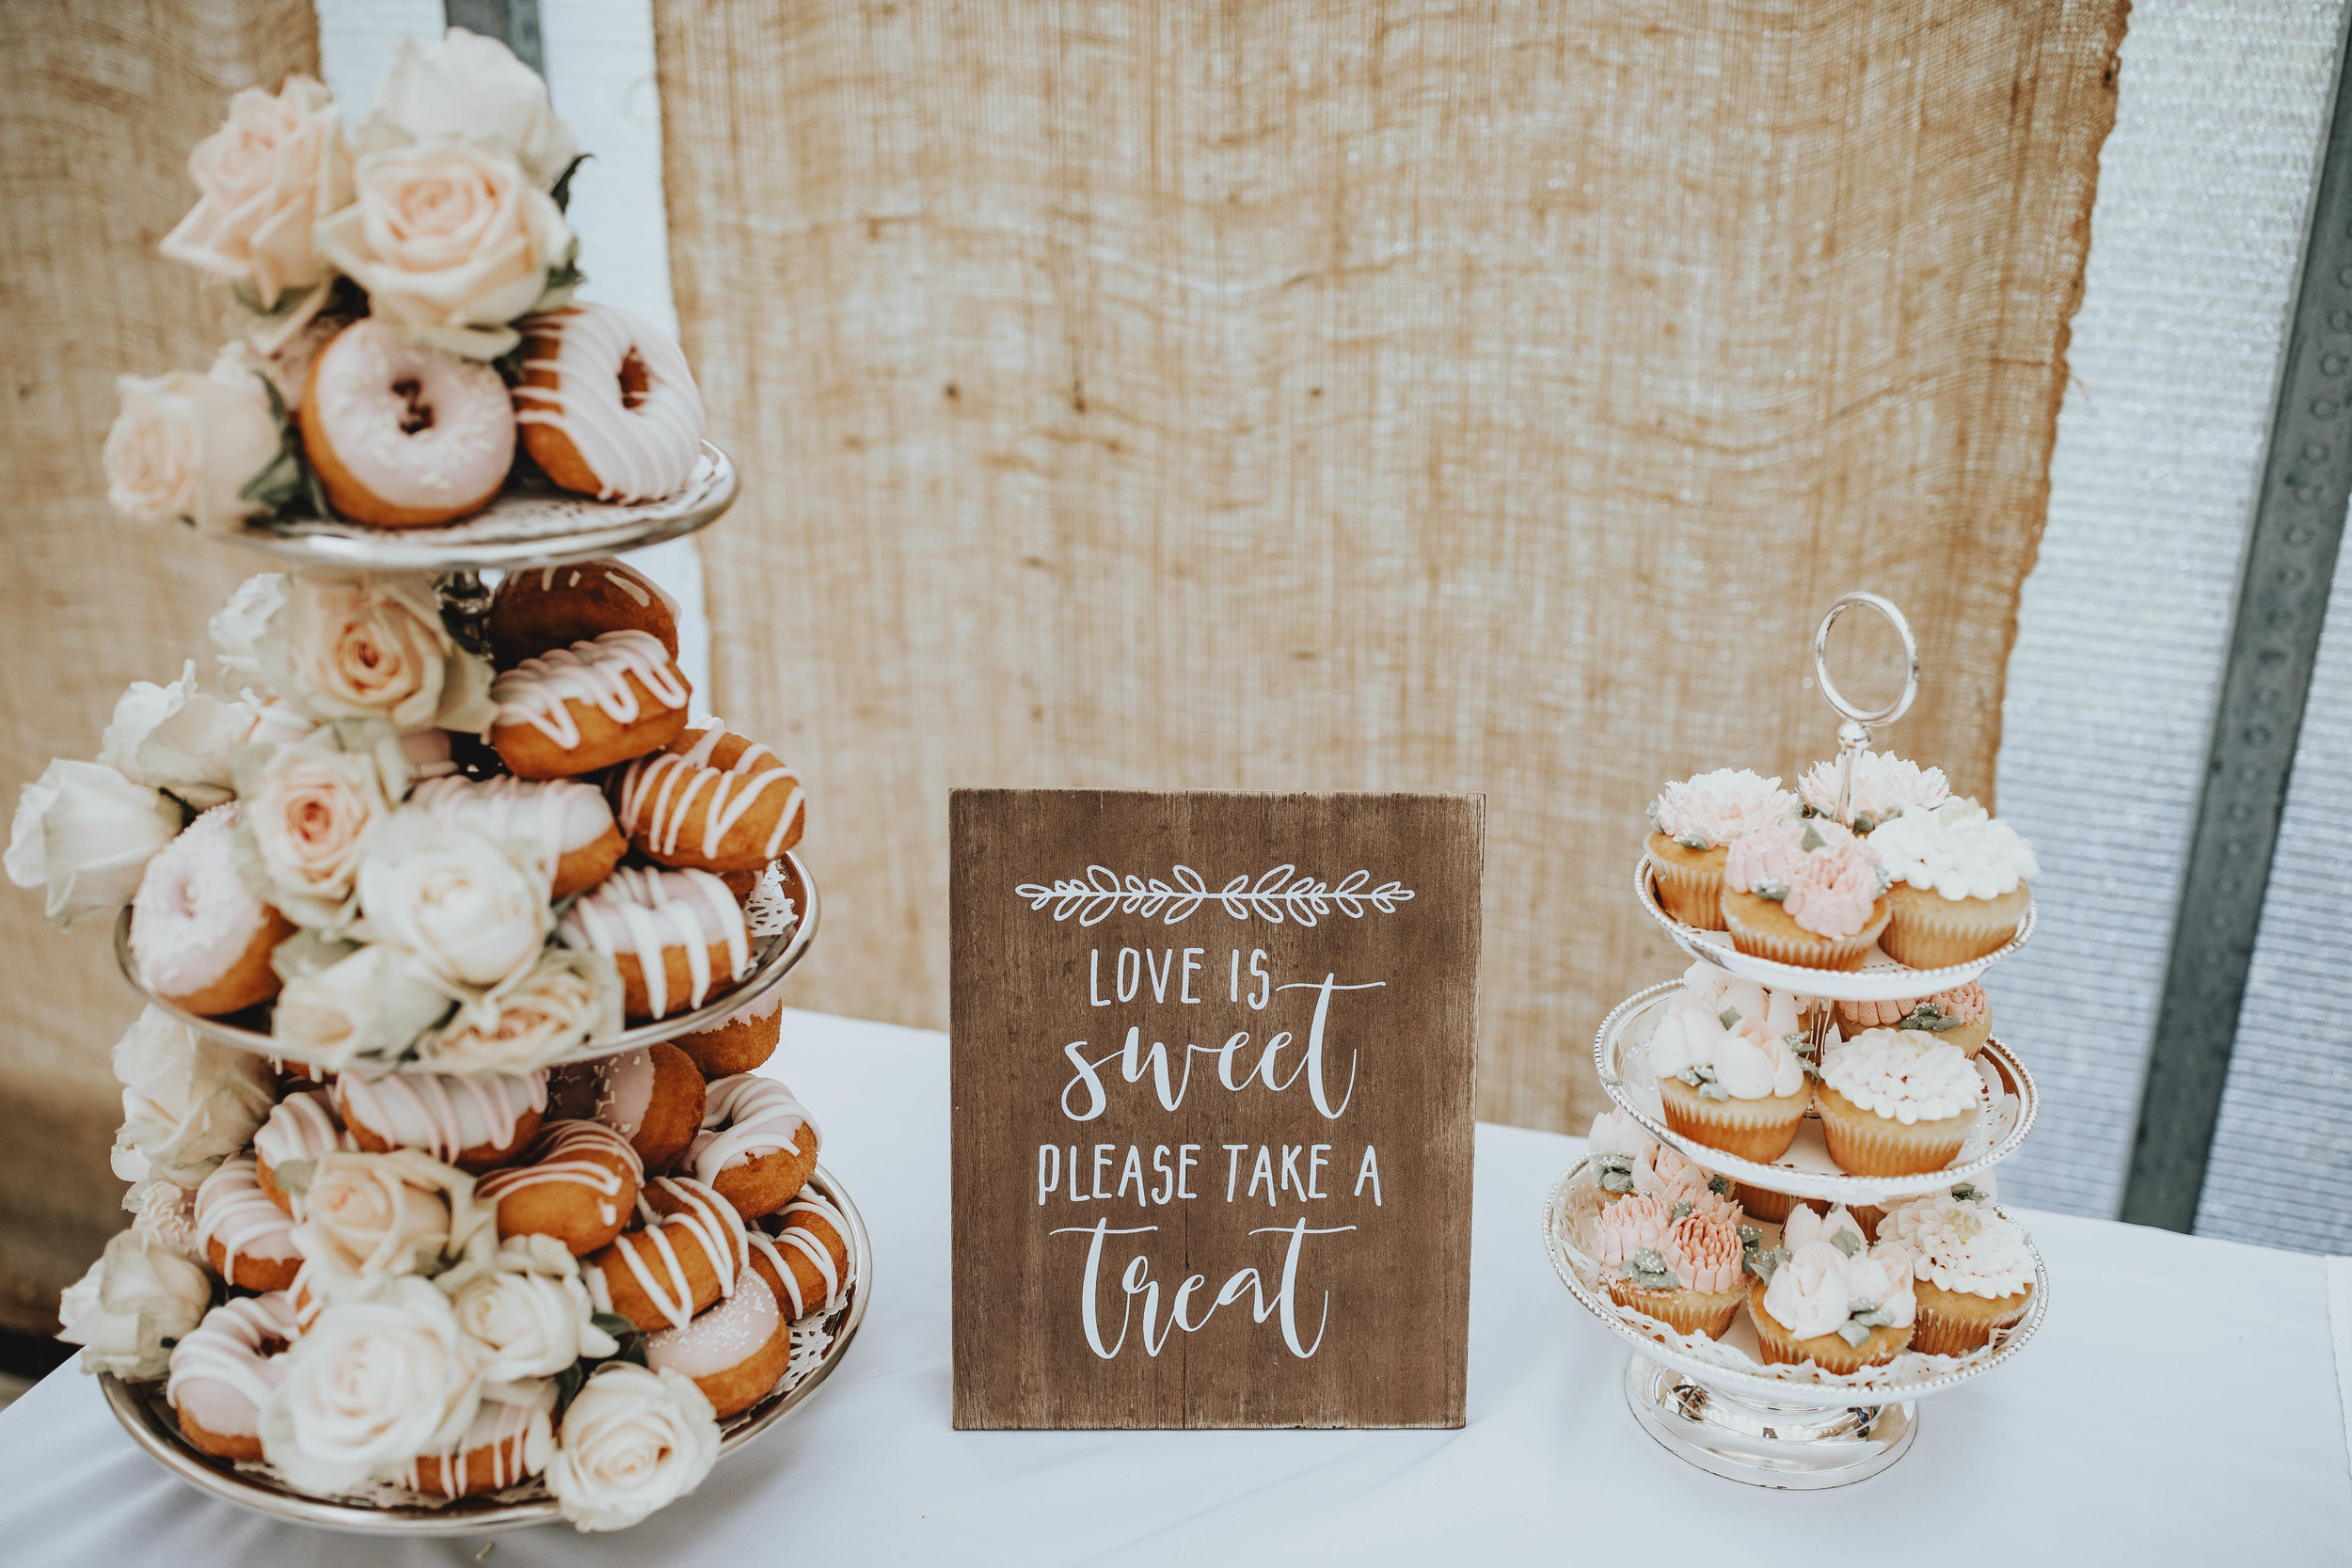 Bridal Shower Recap | Pine Barren Beauty | boho bridal shower, whimsical bridal shower,  boho bridal shower details, pink glazed donuts, bridal shower dessert table ideas